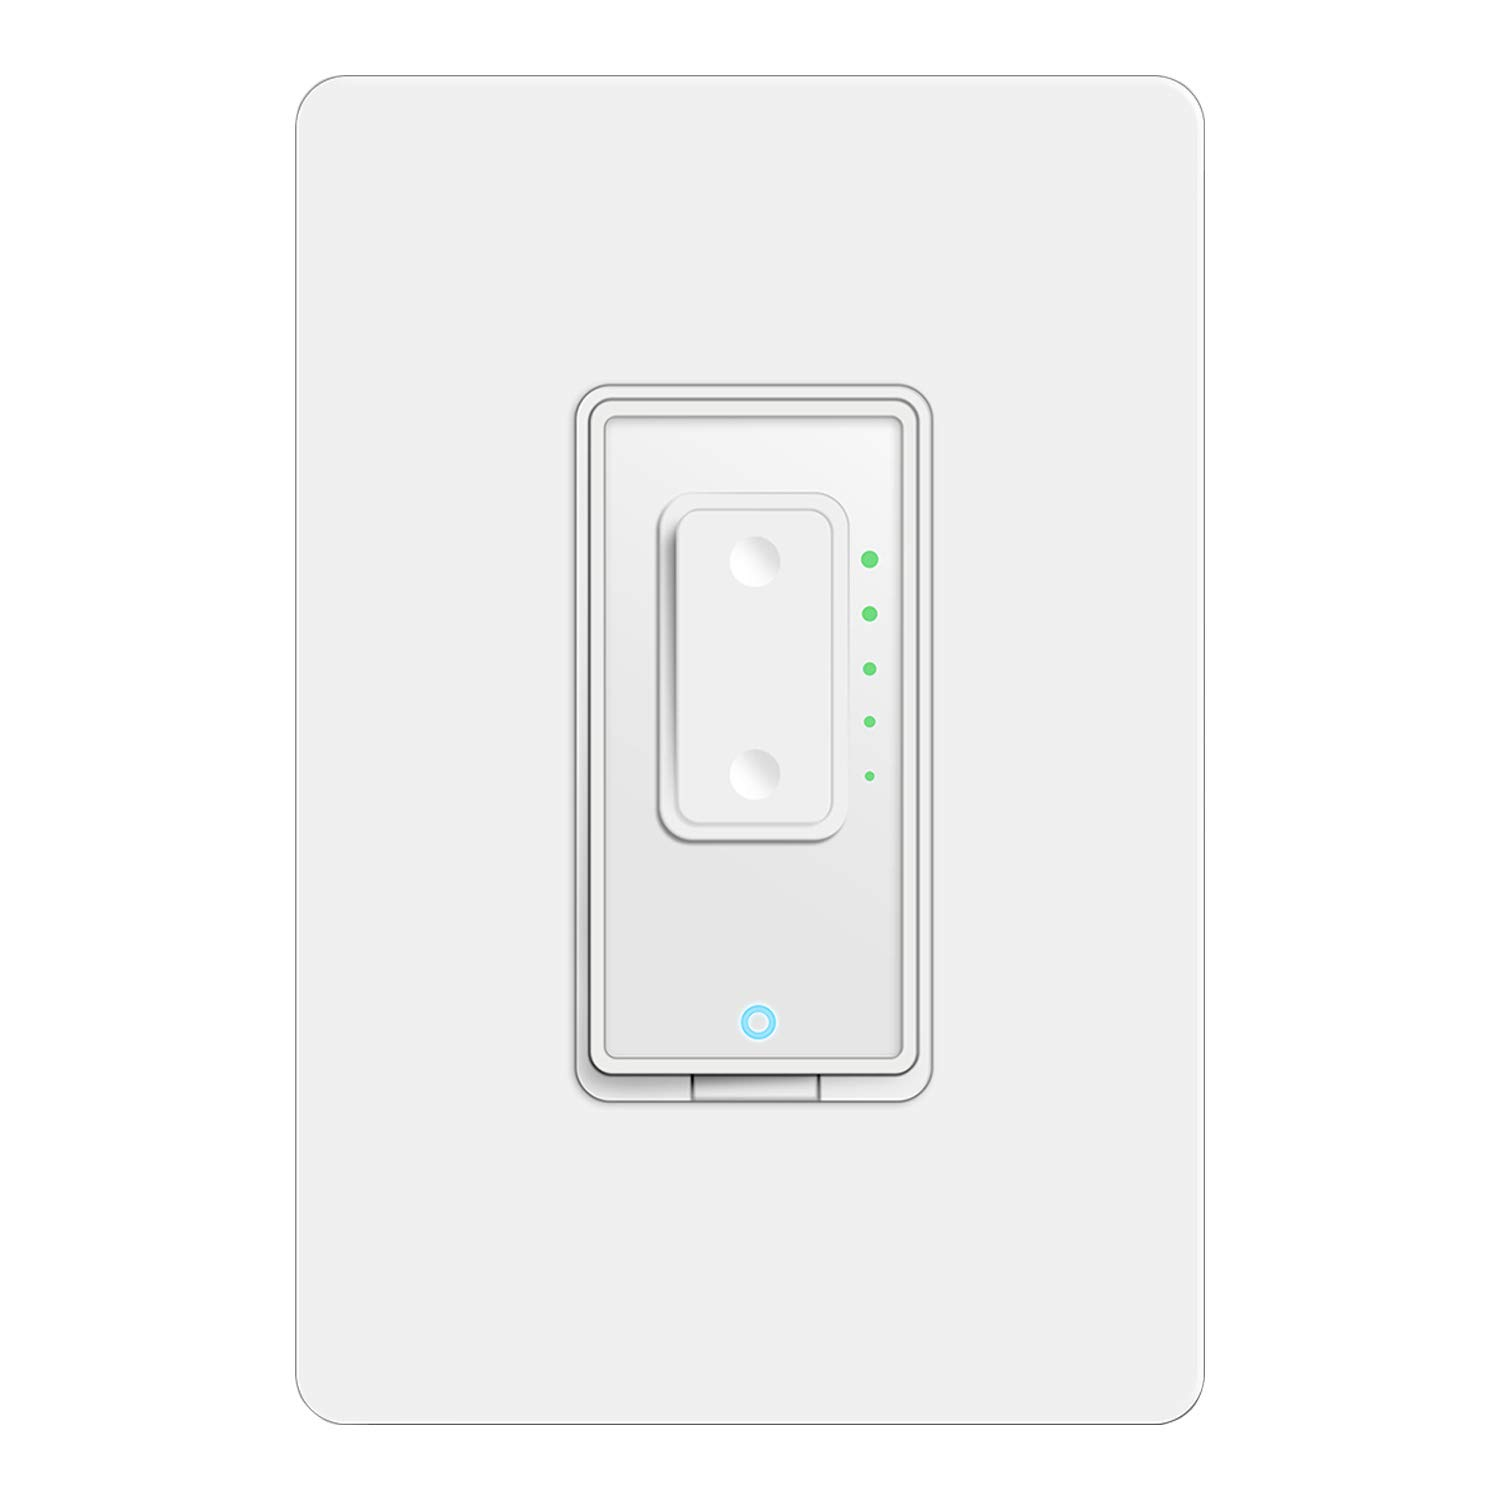 Dimmable WiFi Switch,US Plug Wall-in Smart Switch Smart Life APP Phone Remote Control Compatible with Alexa Google Assistant IFTTT